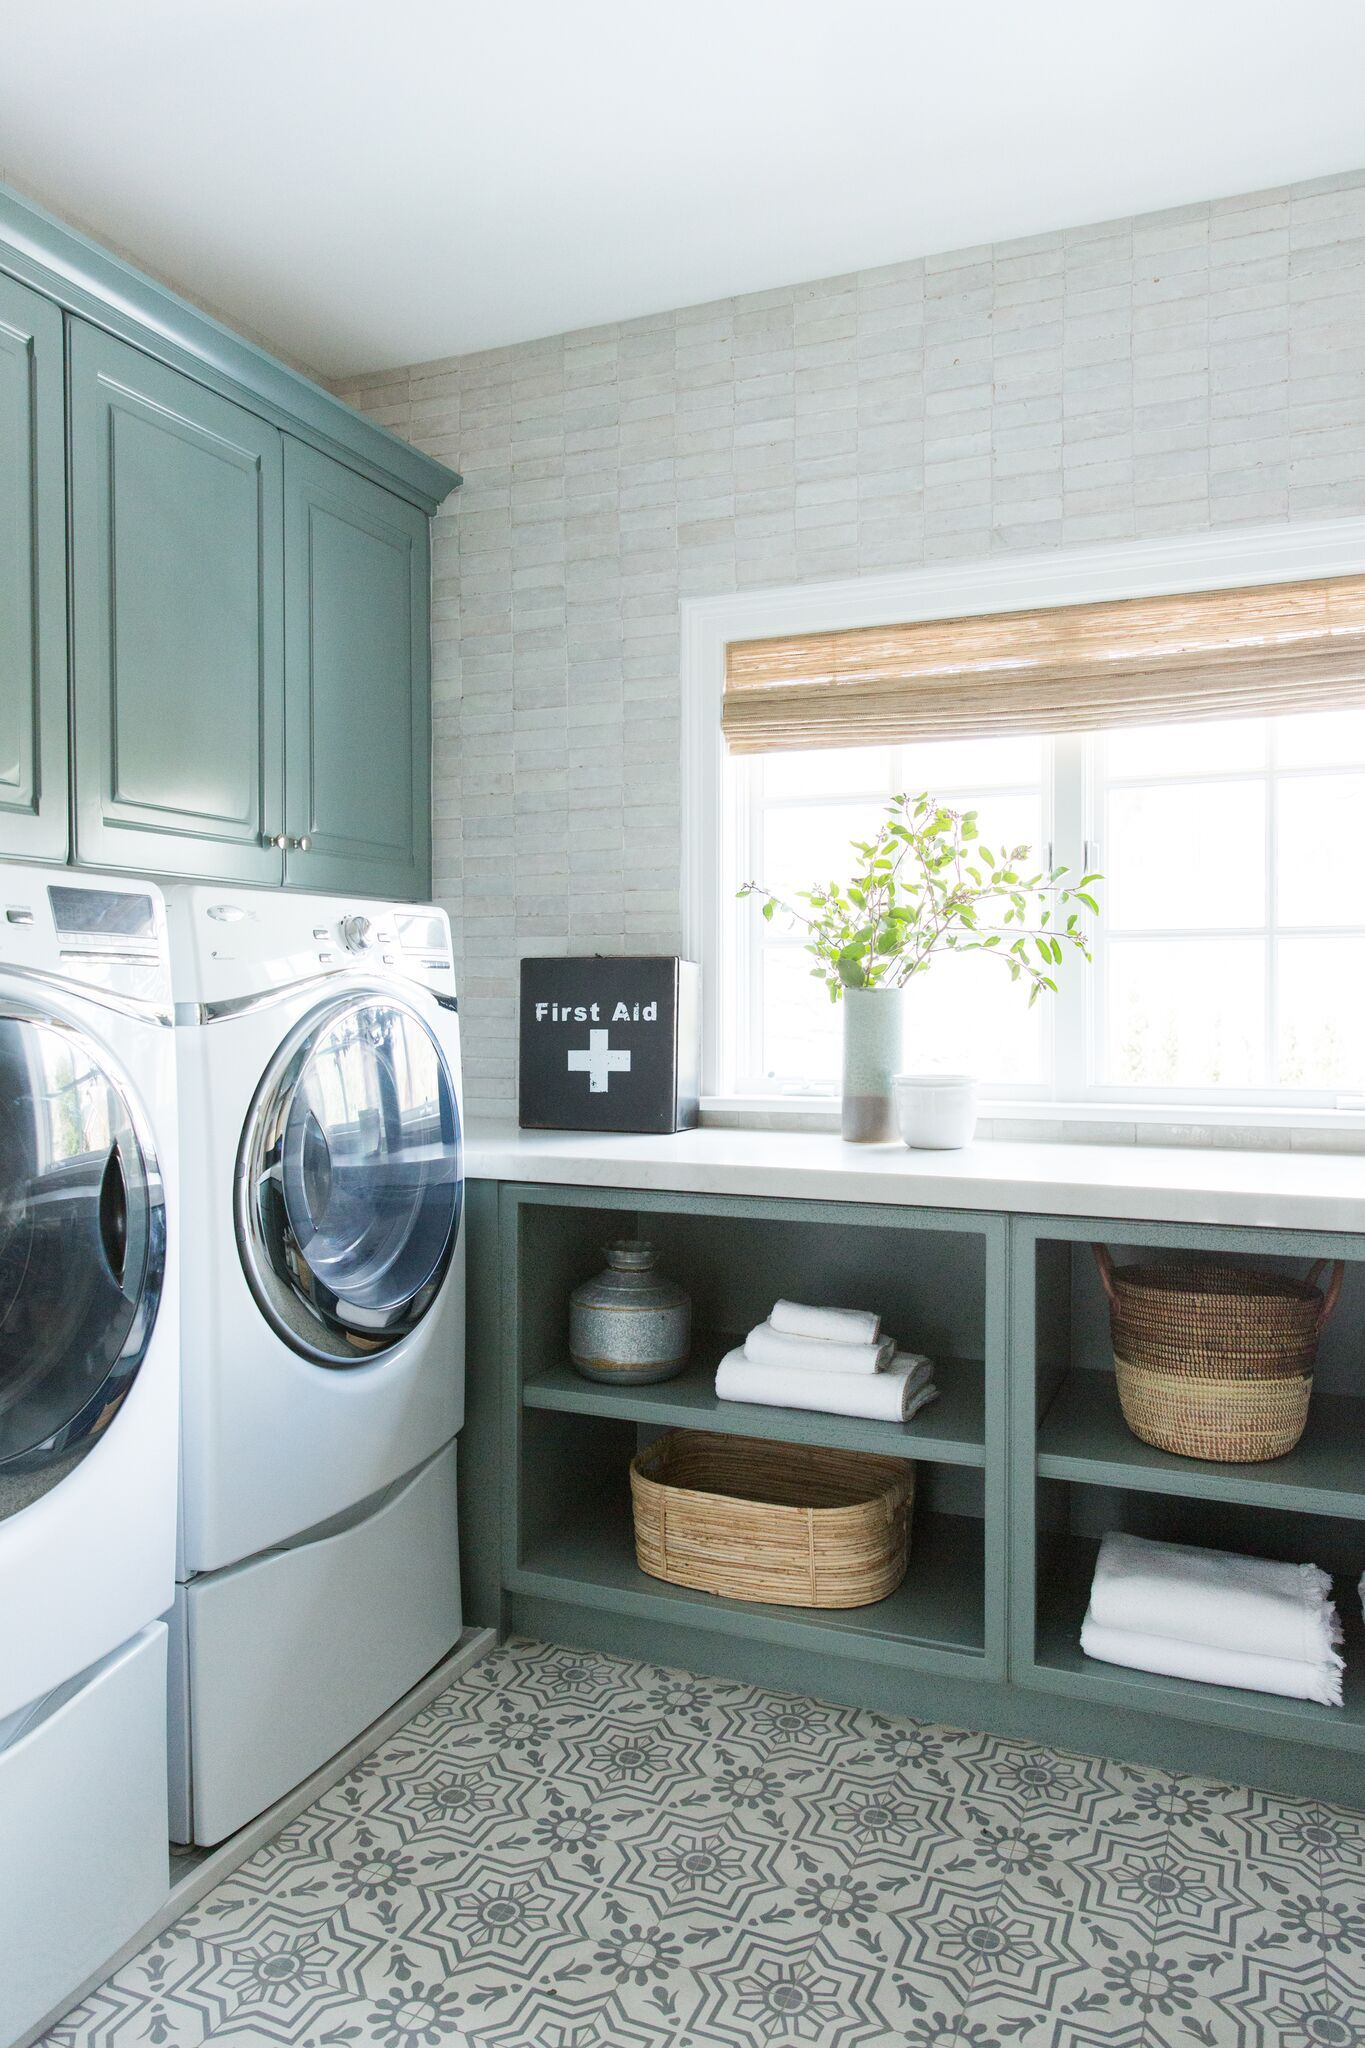 A new classic laundry room remodel with clay tiles green cabinets and patterned tile flooring studio mcgee blog